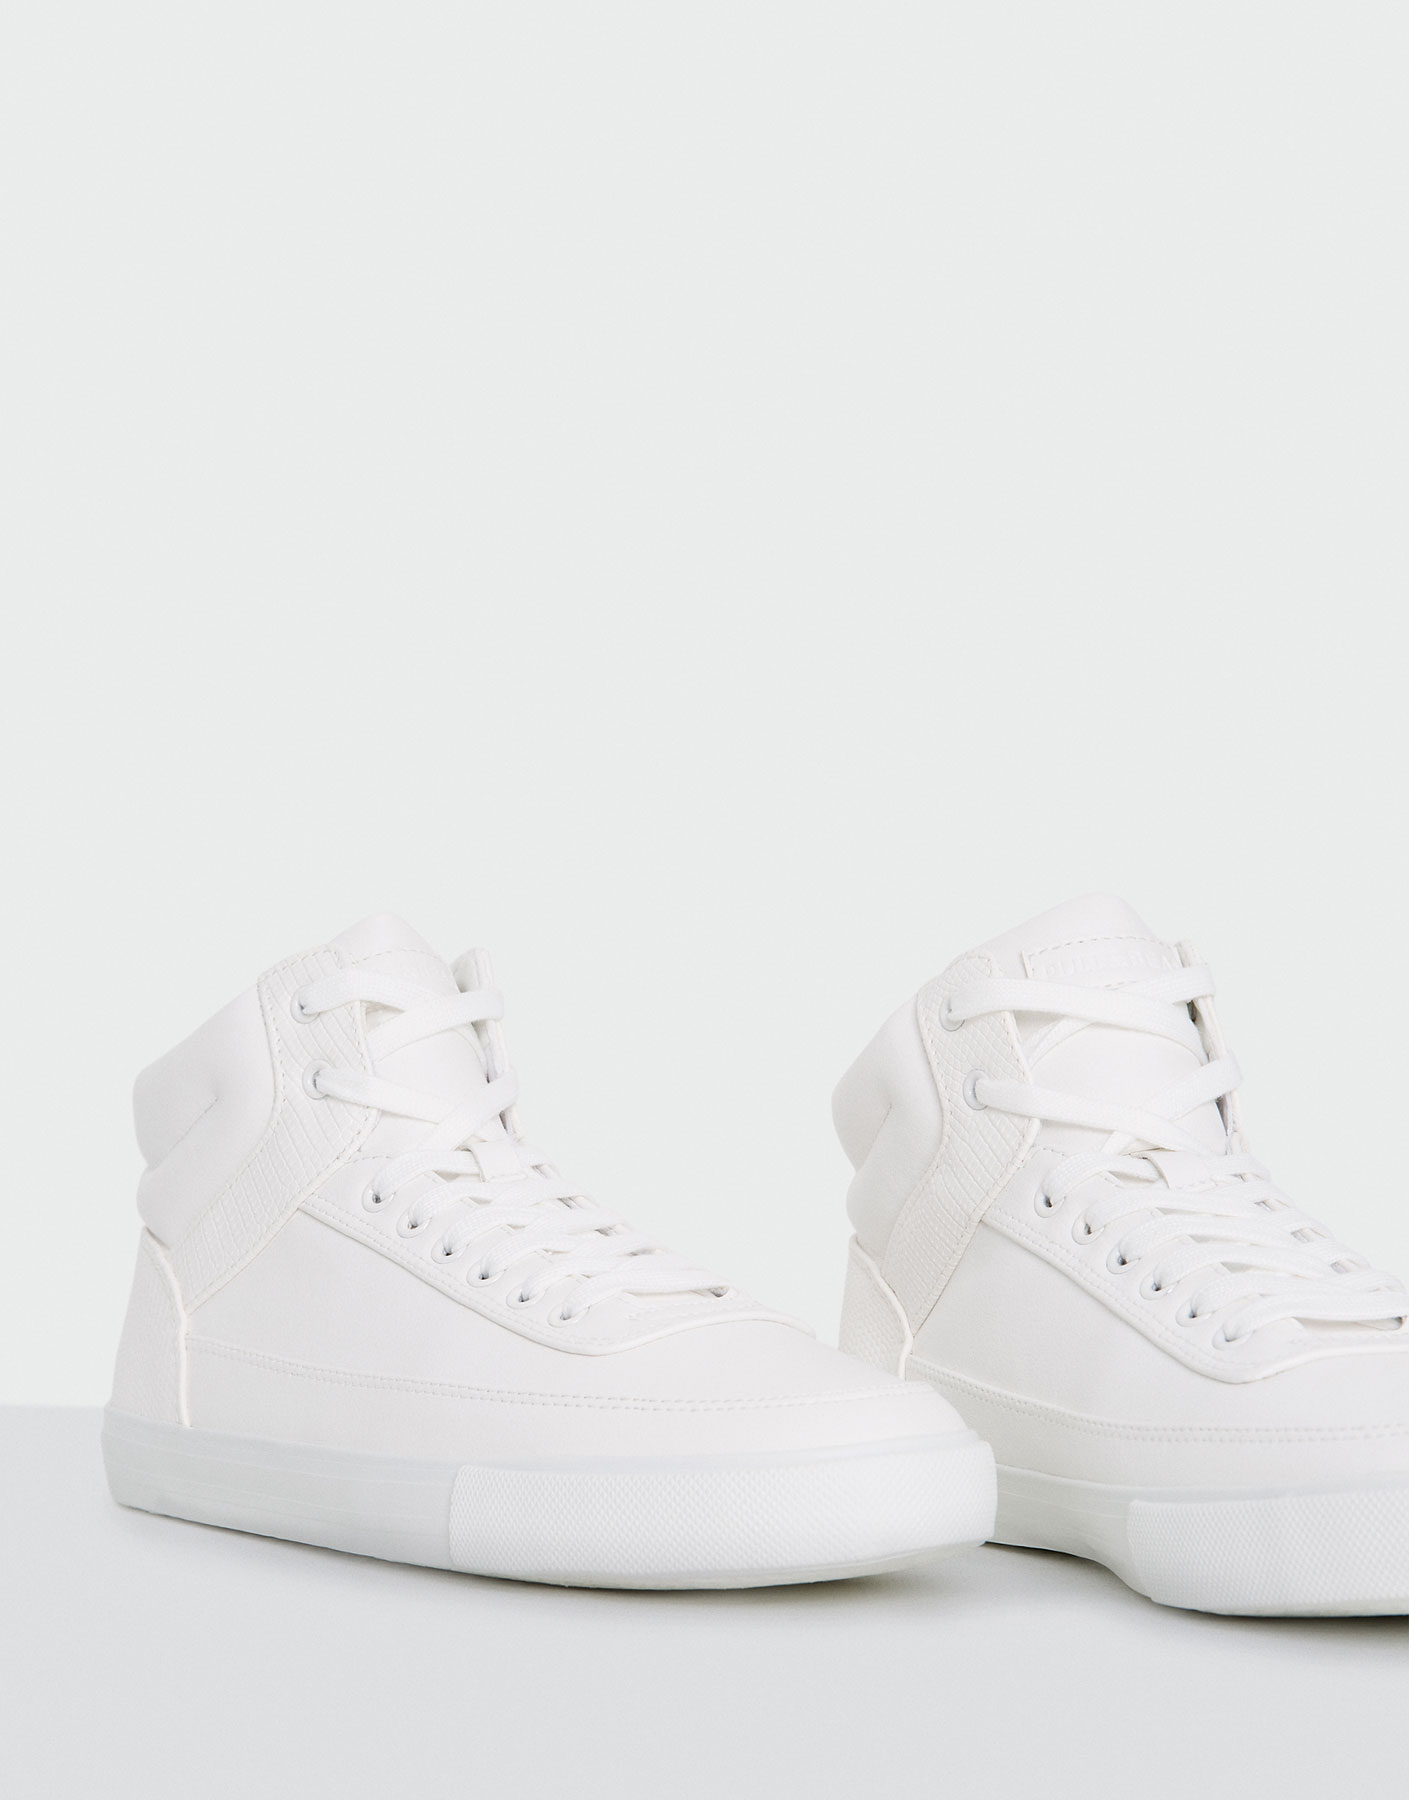 Basic high-top sneakers